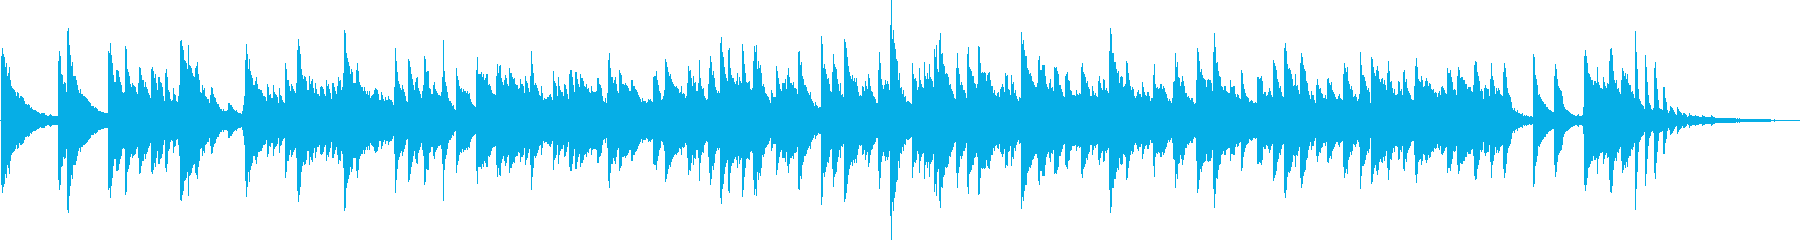 The beginning of a refreshing morning (piano)'s reproduced waveform